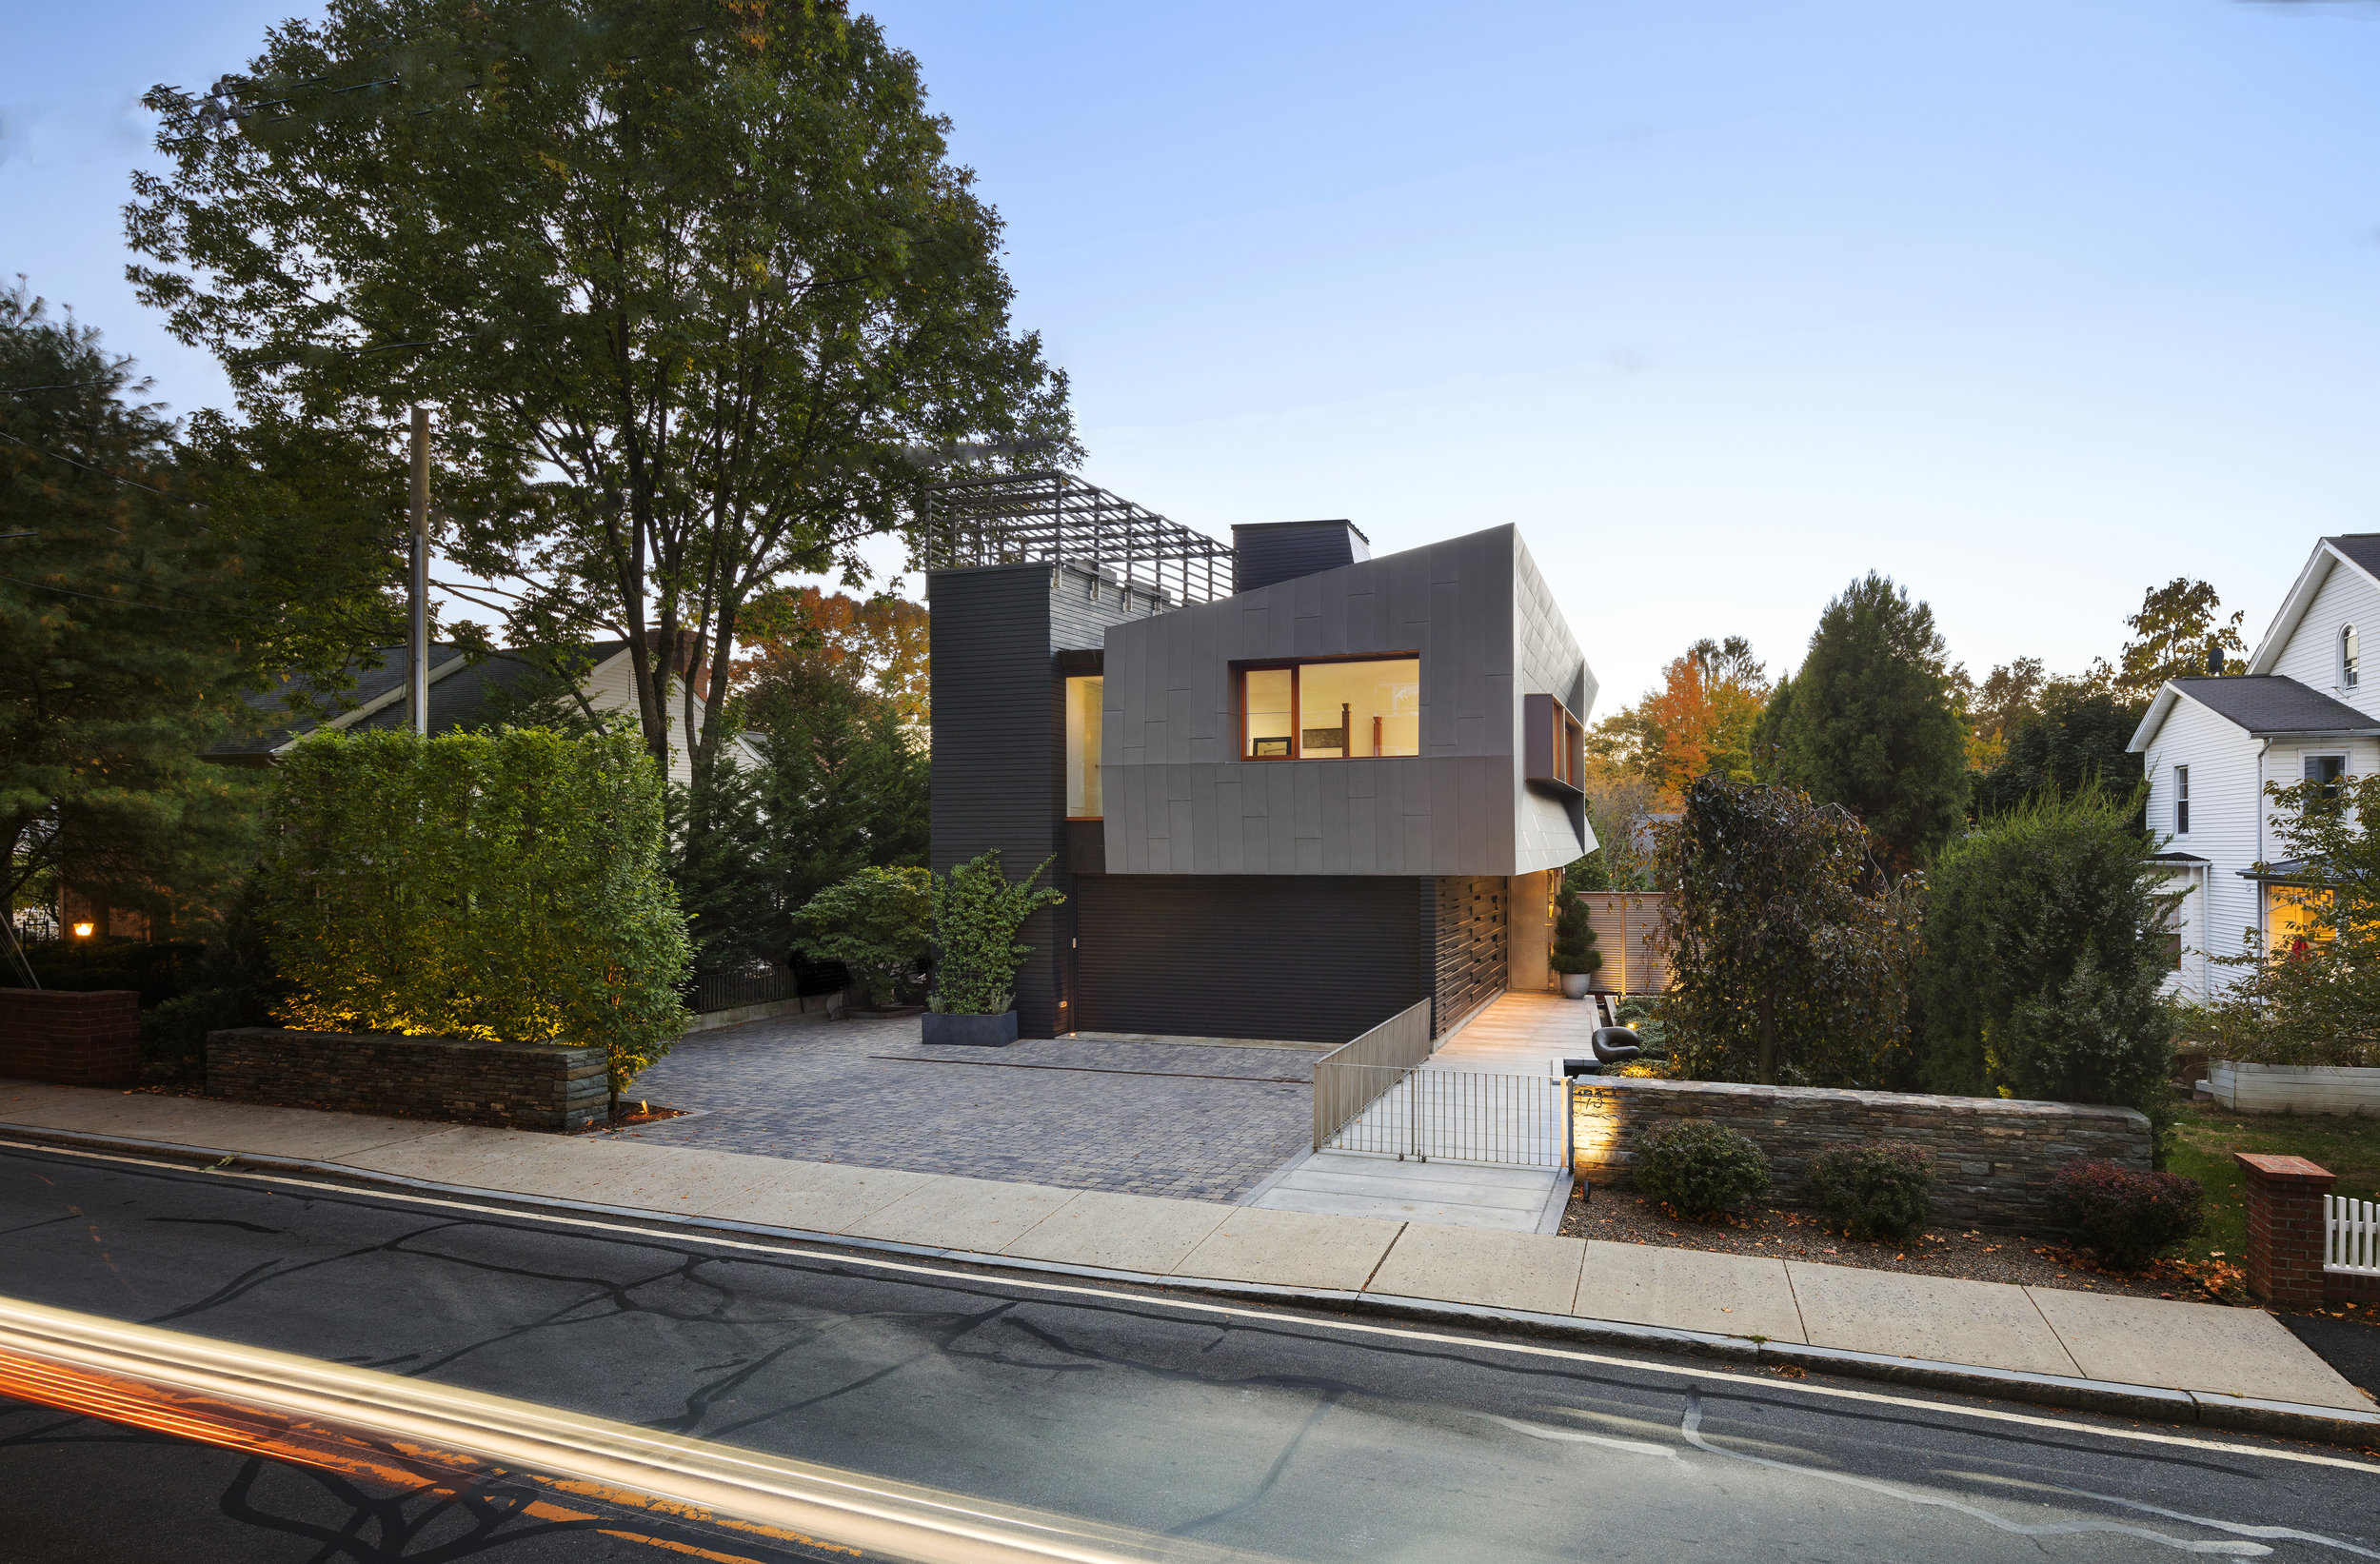 new canaan townhouse during sunset with a rooftop terrace